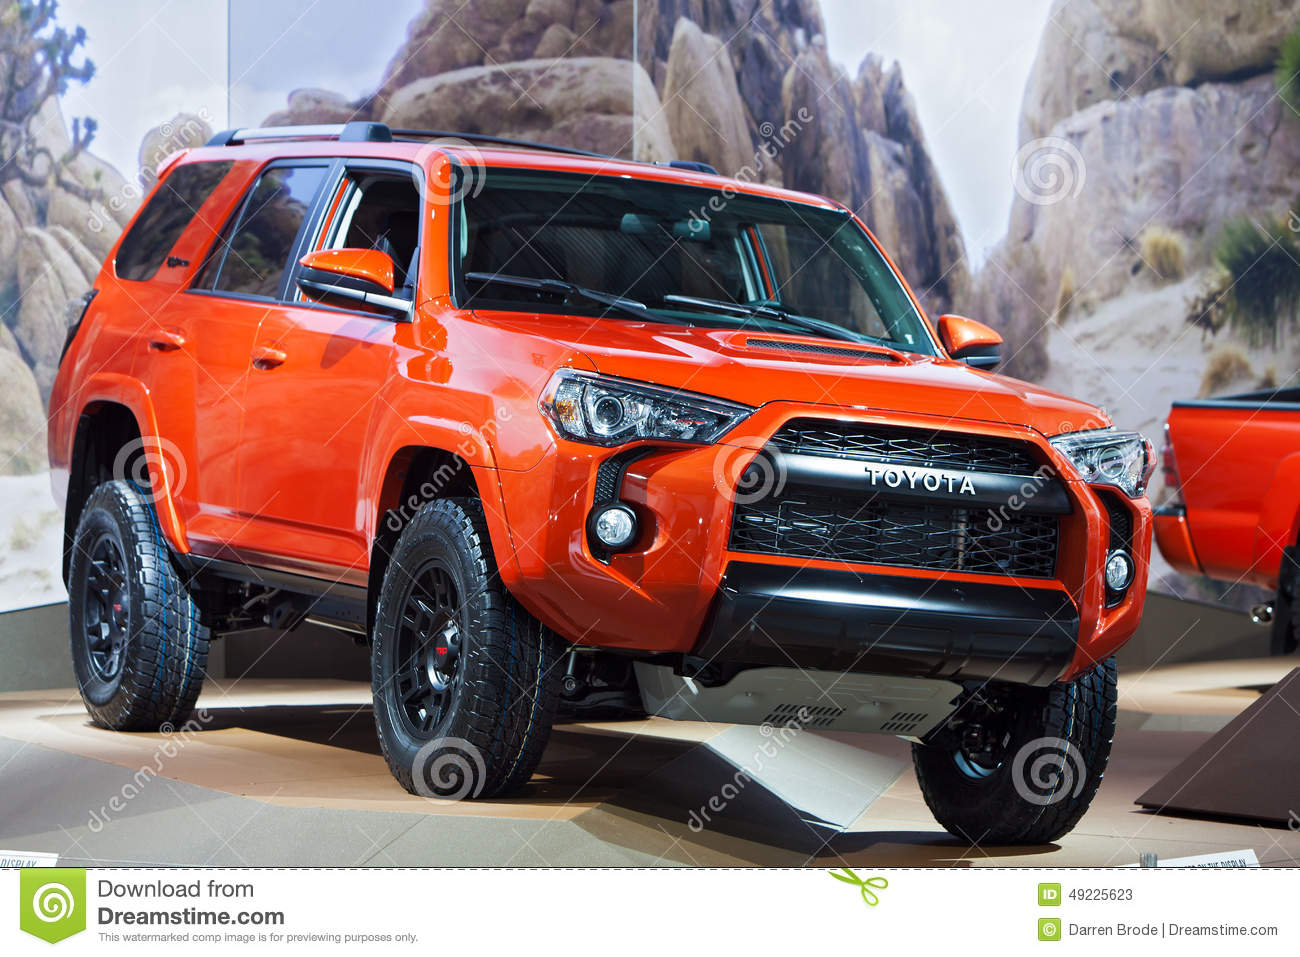 De toyota quatre pro detroit salon de l 39 auto 2015 du for Salon de auto 2015